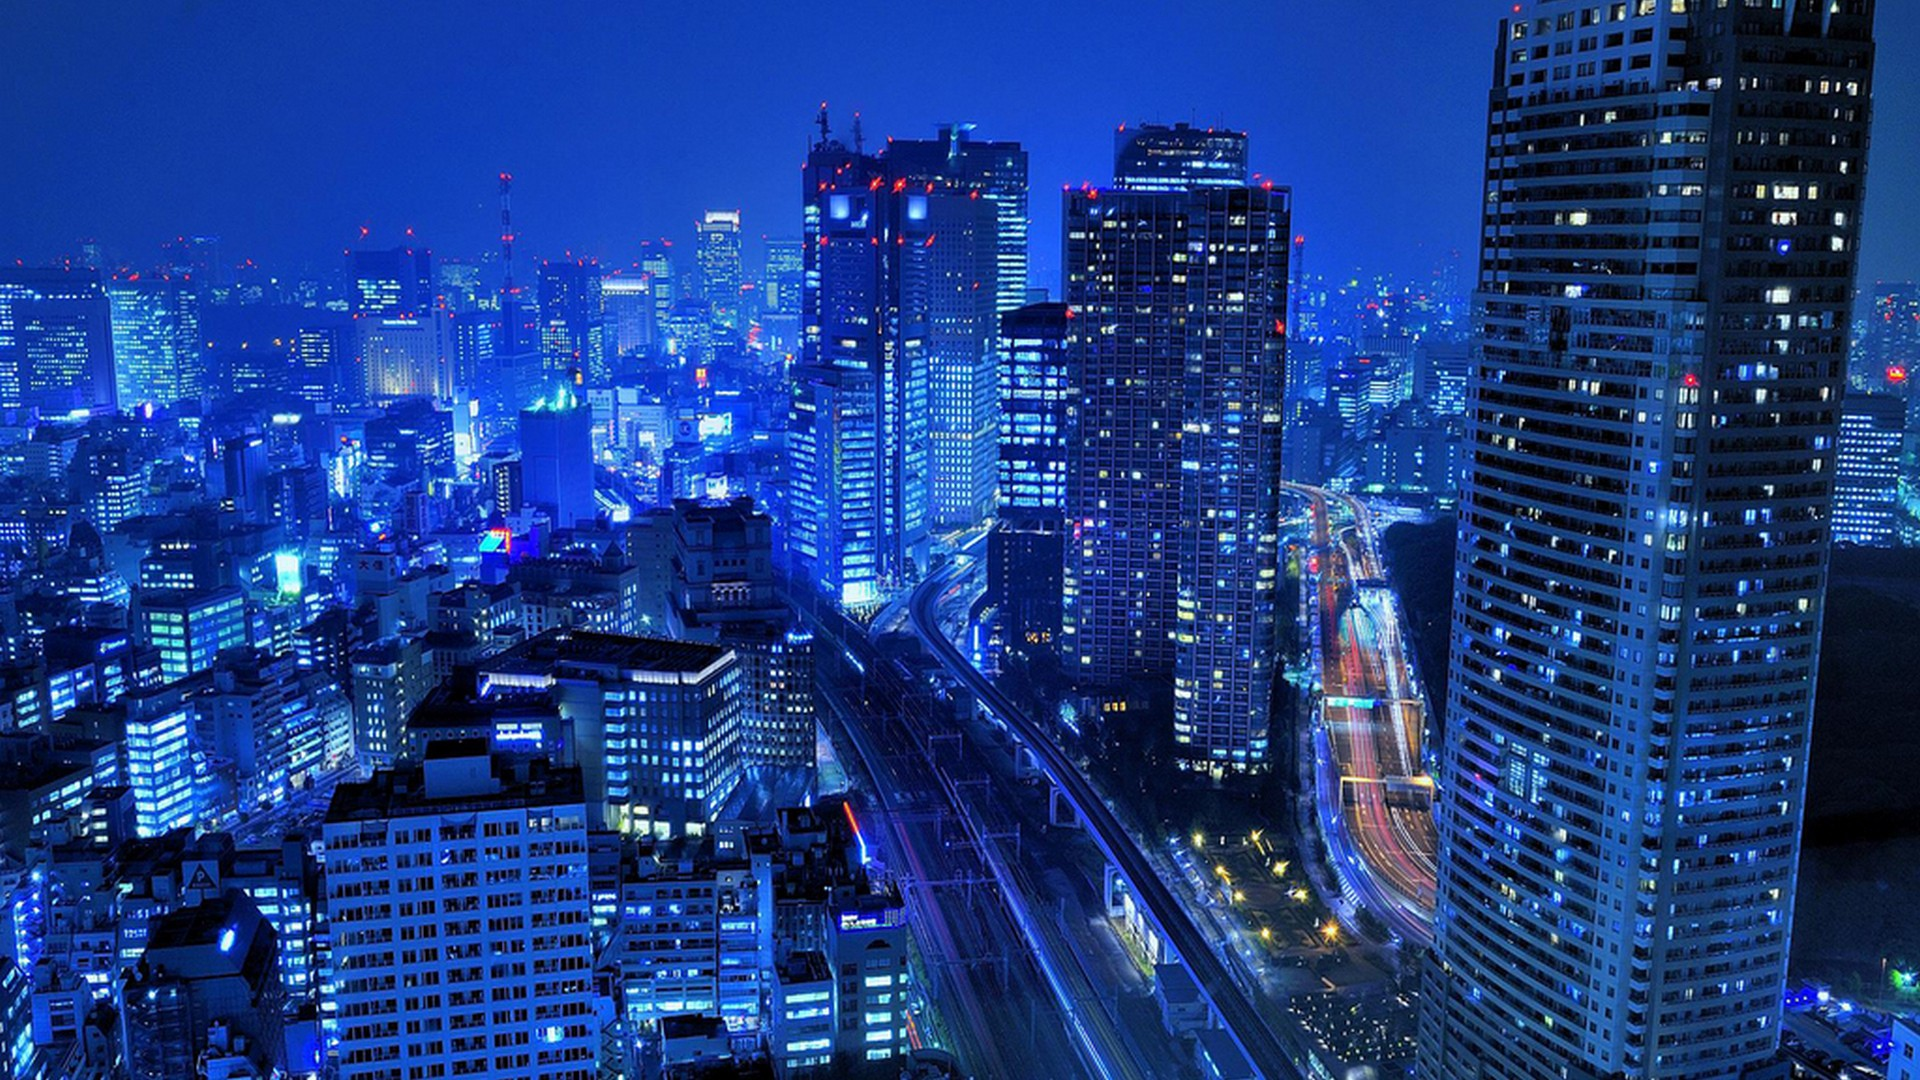 Japan Tokyo cityscapes skyscrapers roads city lights wallpaper 1920x1080